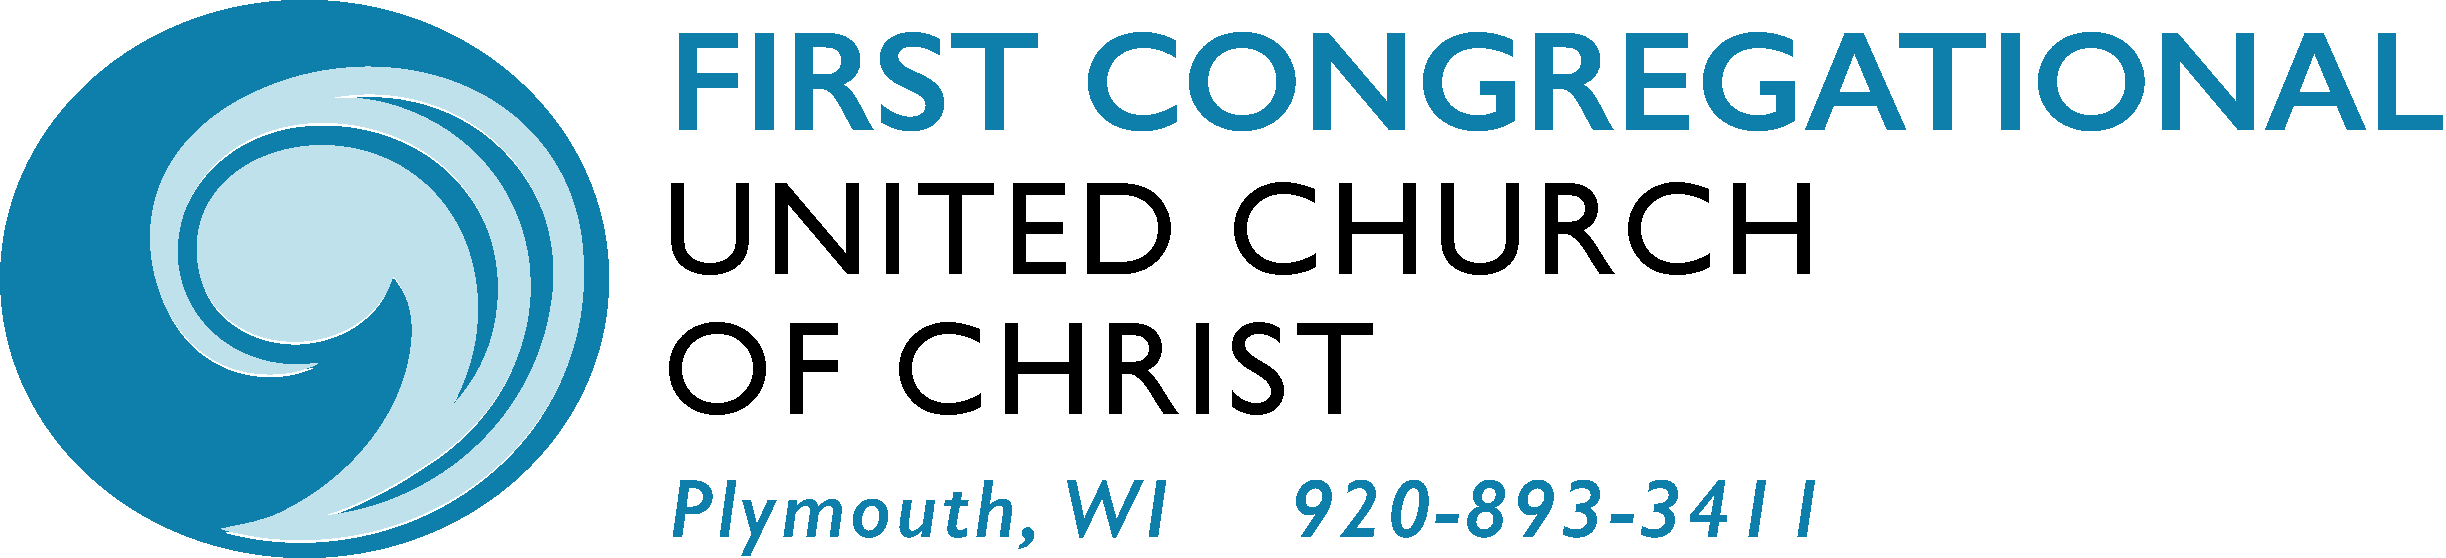 First Congregational UCC Plymouth, WI 920-893-3411